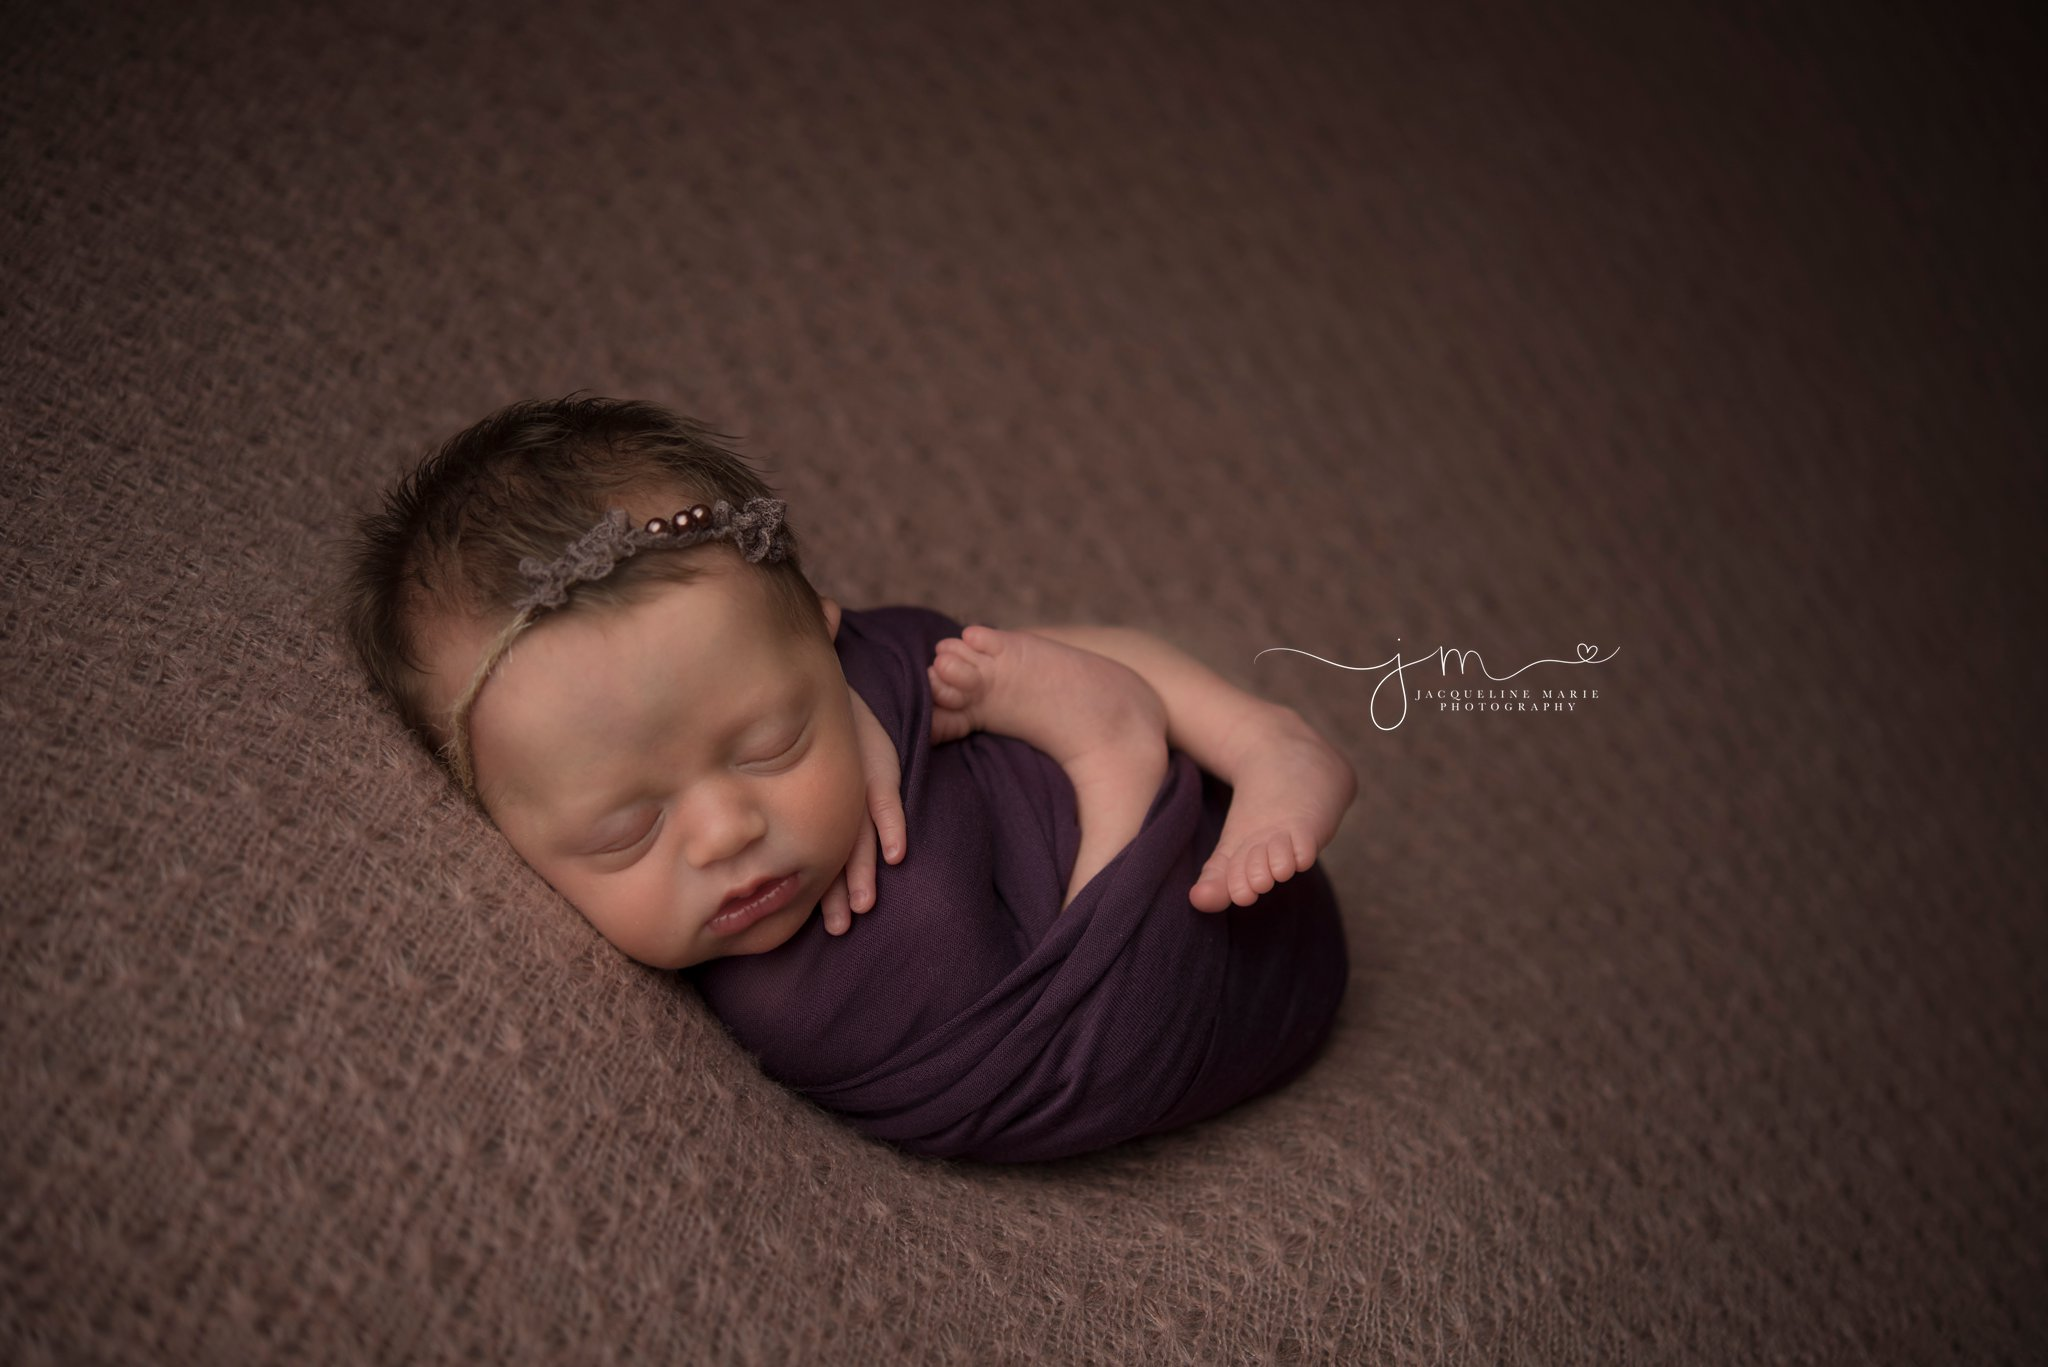 5 day old newborn baby girl is swaddled in purple wrap for newborn photography portraits by columbus ohio newborn photographer jacqueline marie photography